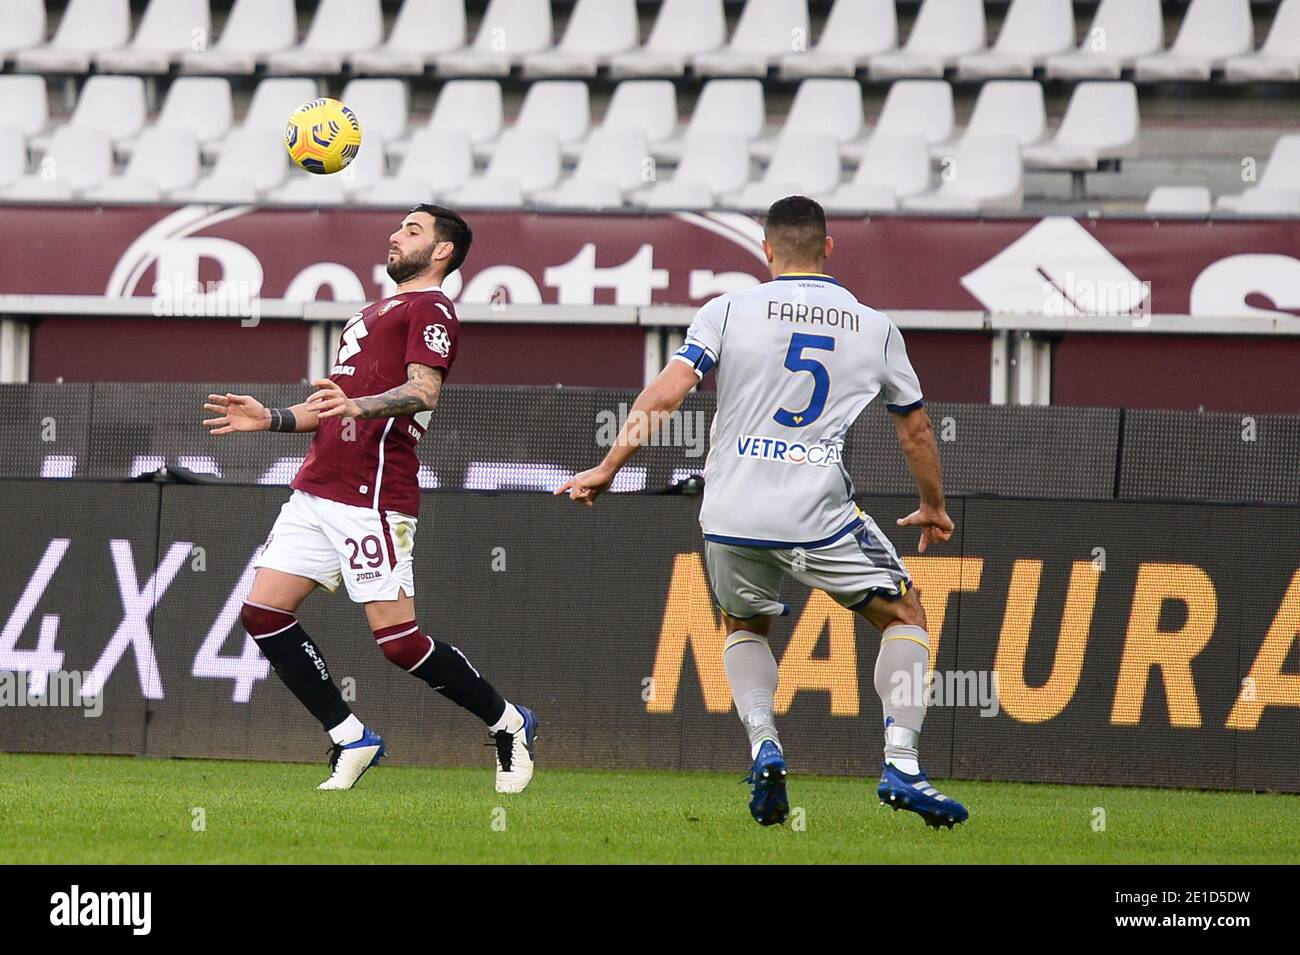 Nicola Murru of Torino FC during the Serie A football match between Torino FC and Hellas Verona FC at Stadio Olimpico Grande Torino on January 6, 2021 Stock Photo